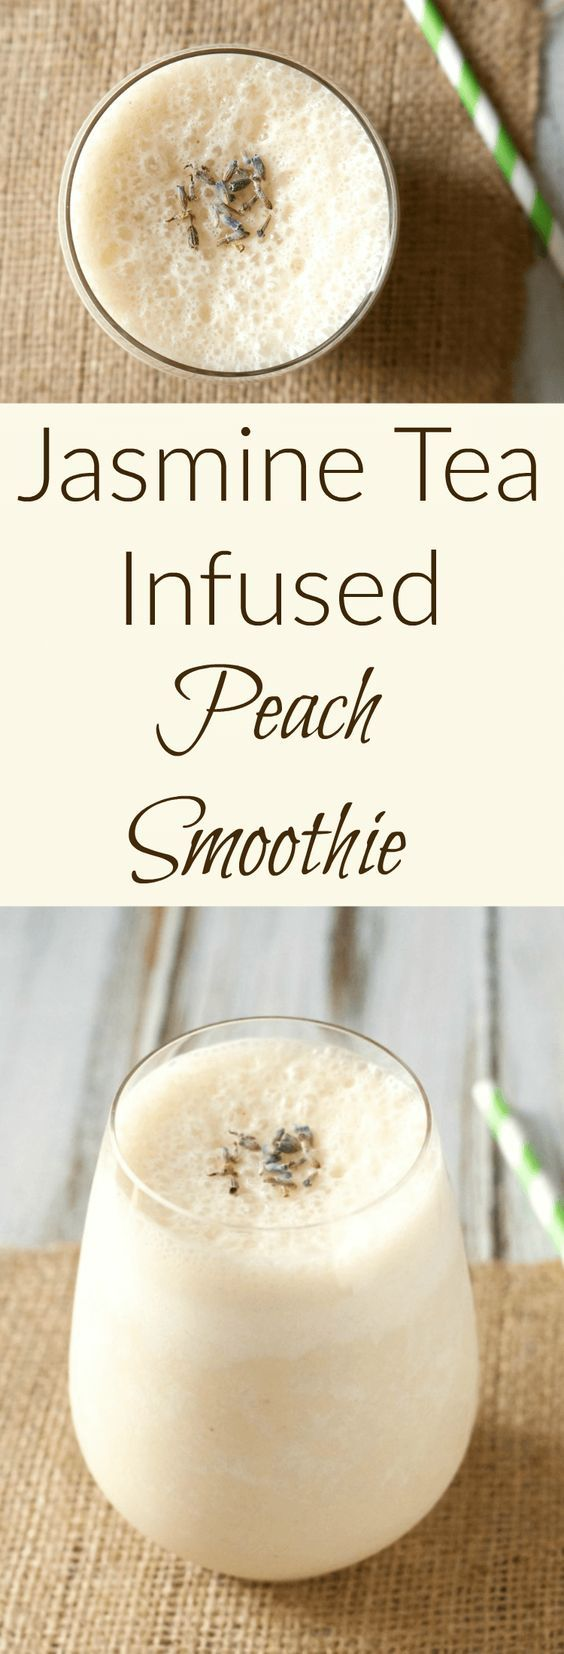 A tangy, frothy kefir-based peach smoothie infused with jasmine tea for Tea Ifused Smoothie Week at Mid-Life Croissant.